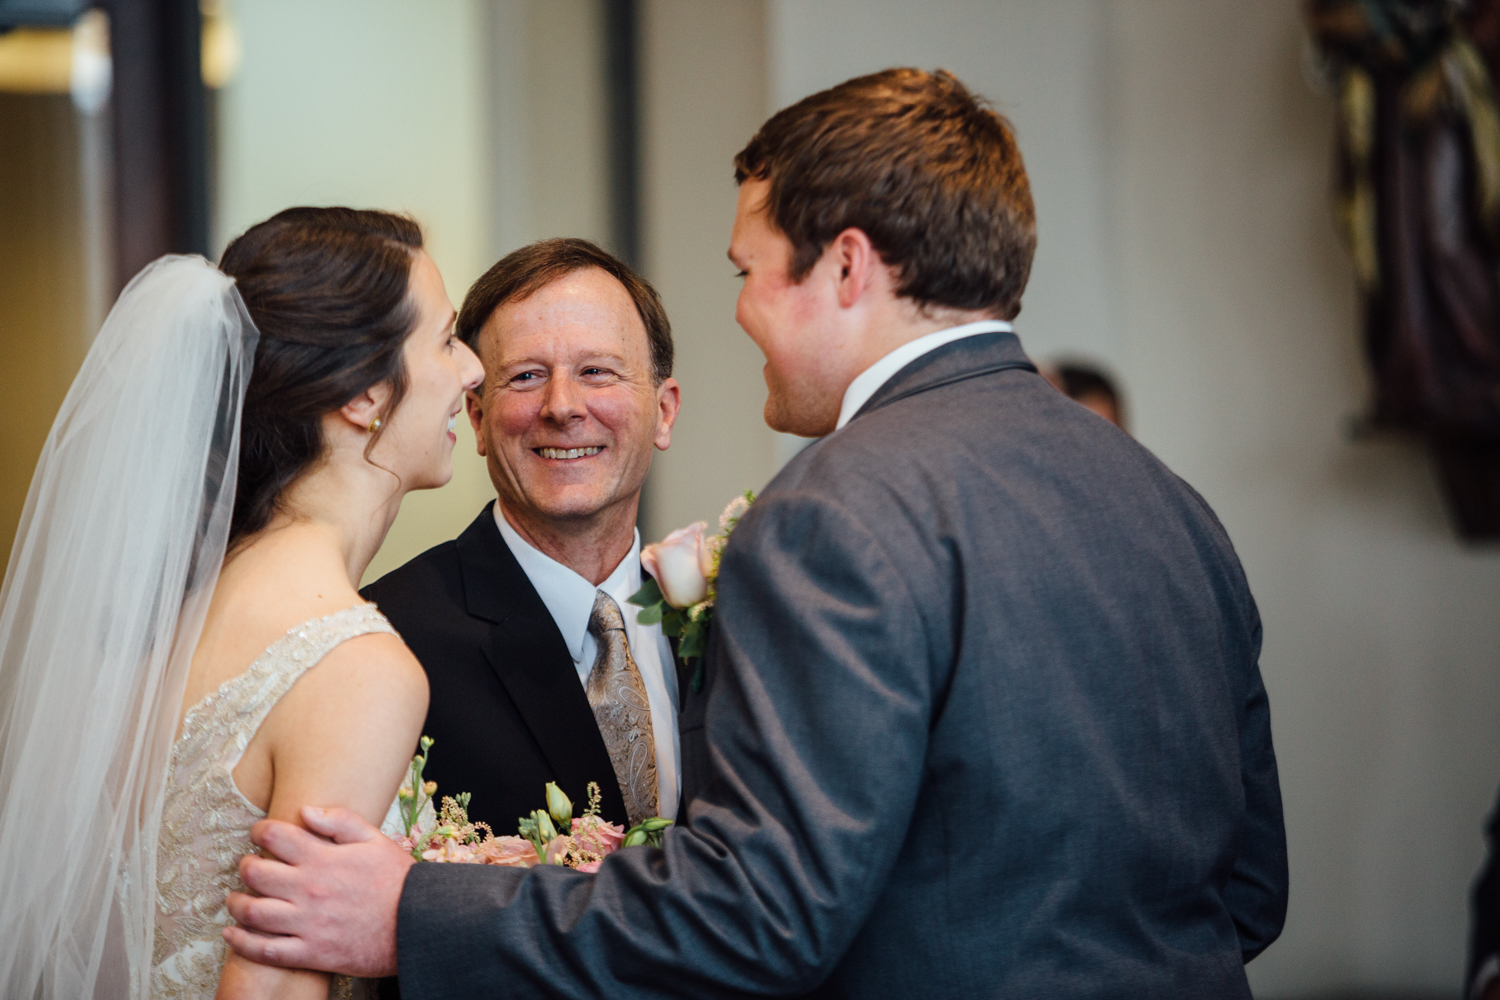 Fun, Intimate Spring Wedding by Corrie Mick Photography-38.jpg